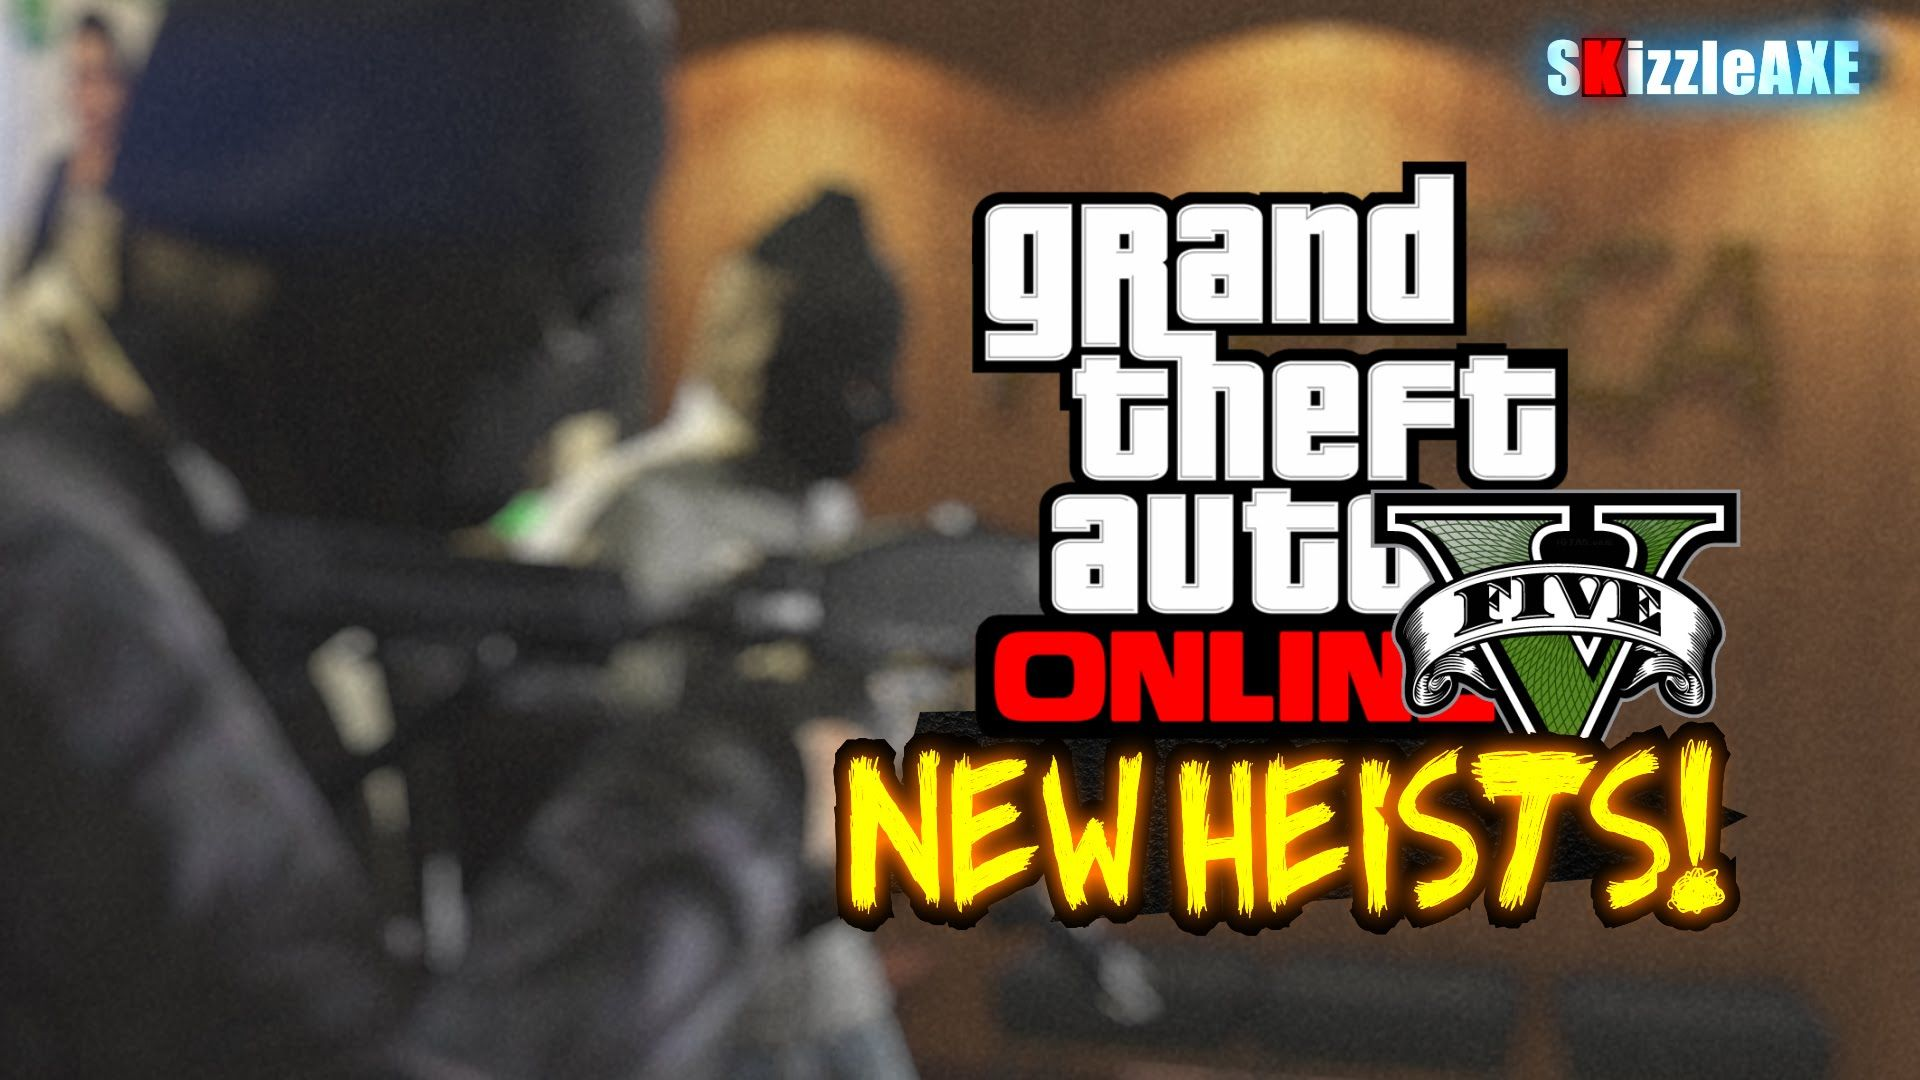 new heist gta 5 online money